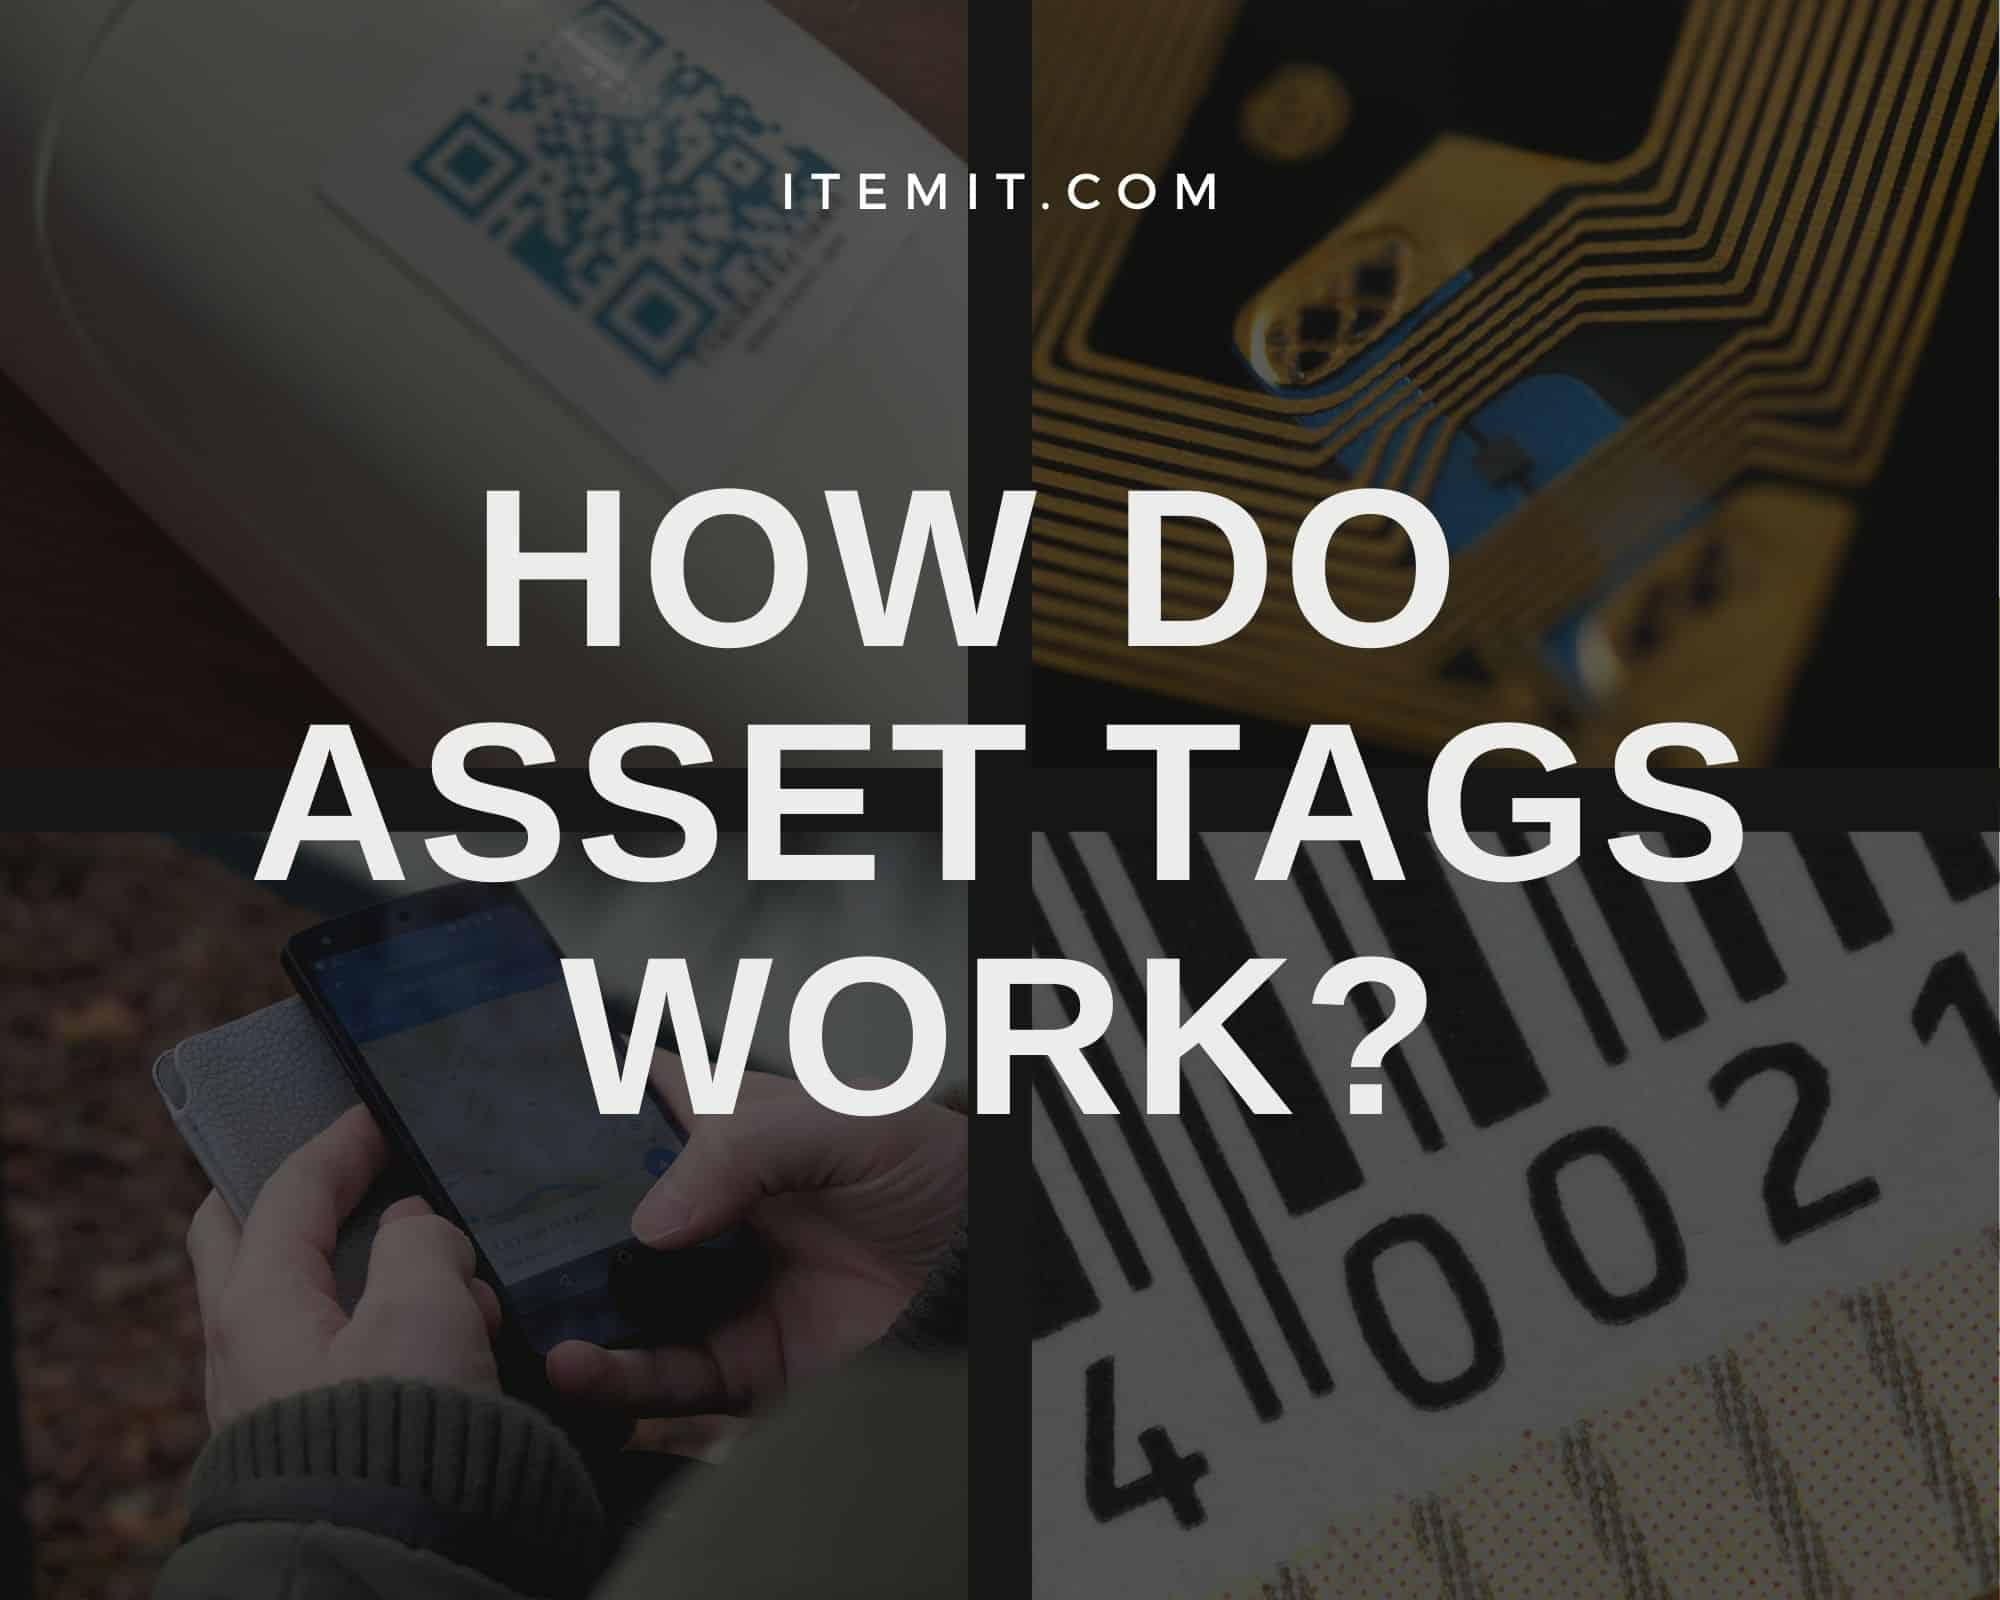 how do asset tags work?